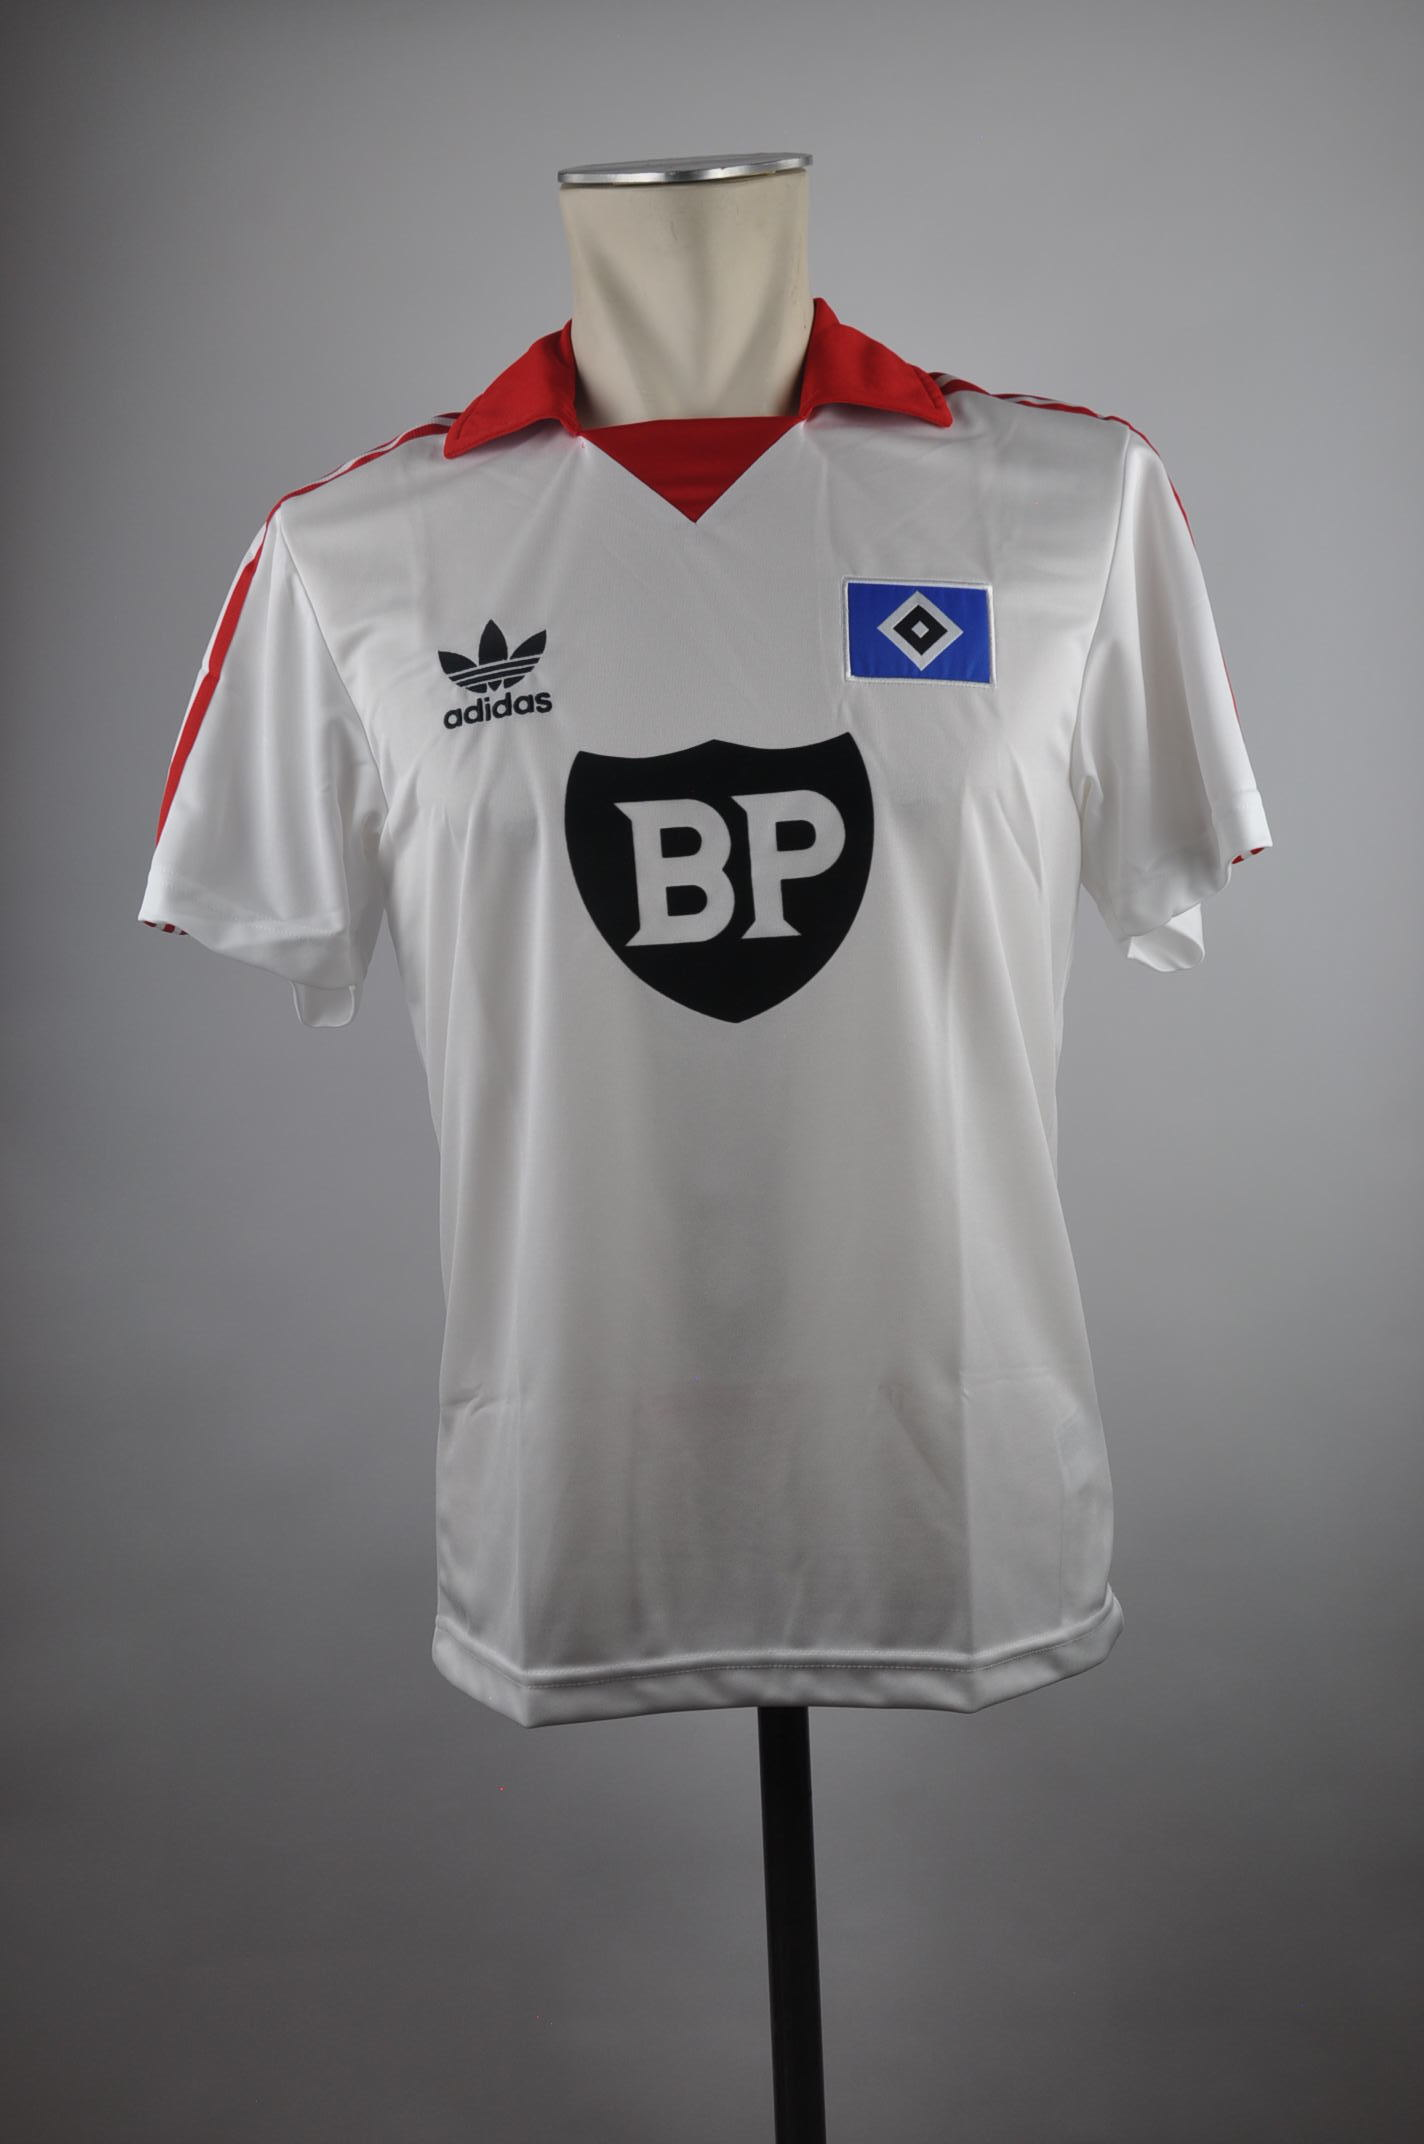 80er jahre hsv retro trikot gr s hamburg adidas originals. Black Bedroom Furniture Sets. Home Design Ideas